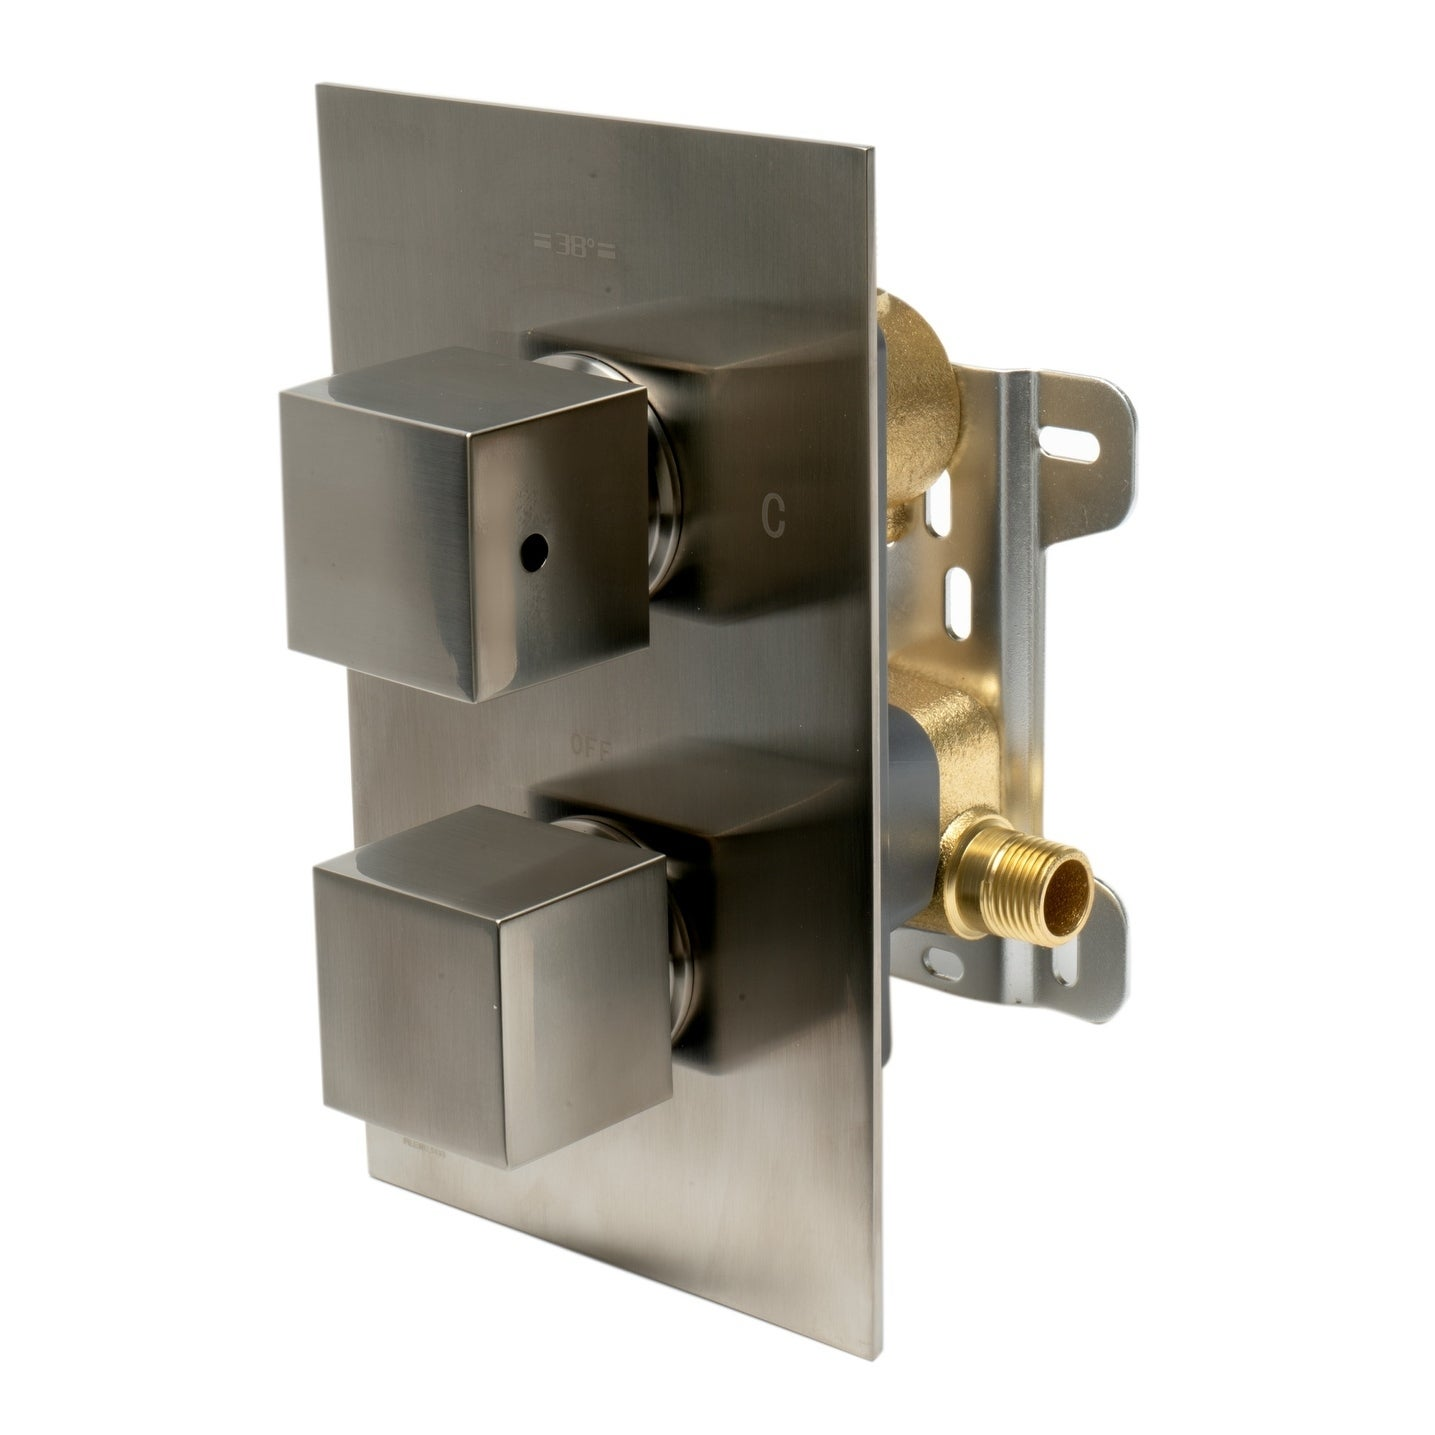 ALFI brand AB2601-BN Brushed Nickel Square Knob 1 Way Thermostatic Shower Mixer